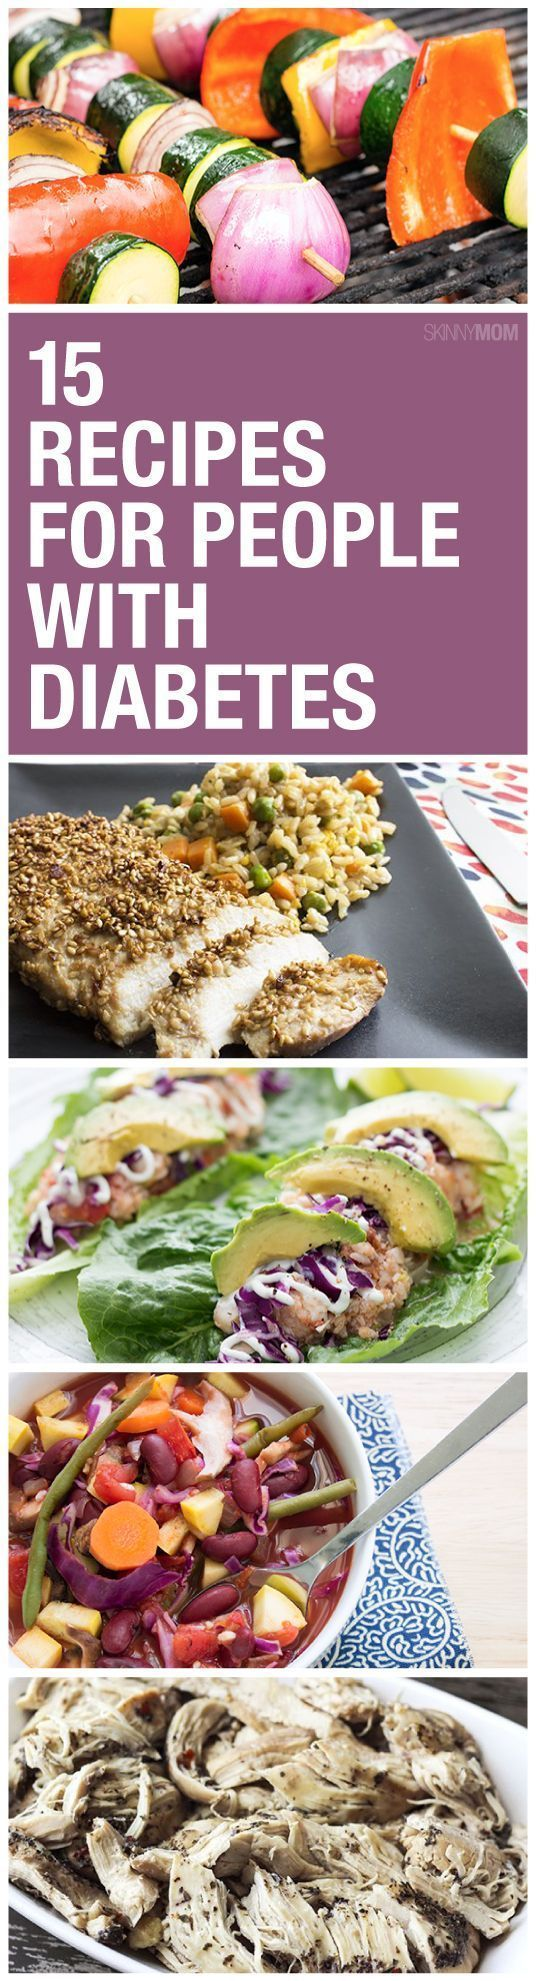 These recipes are not only healthy and diabetic friendly, but they actually taste good, too! #DiabetesDiet #DiabetesCureHealthy